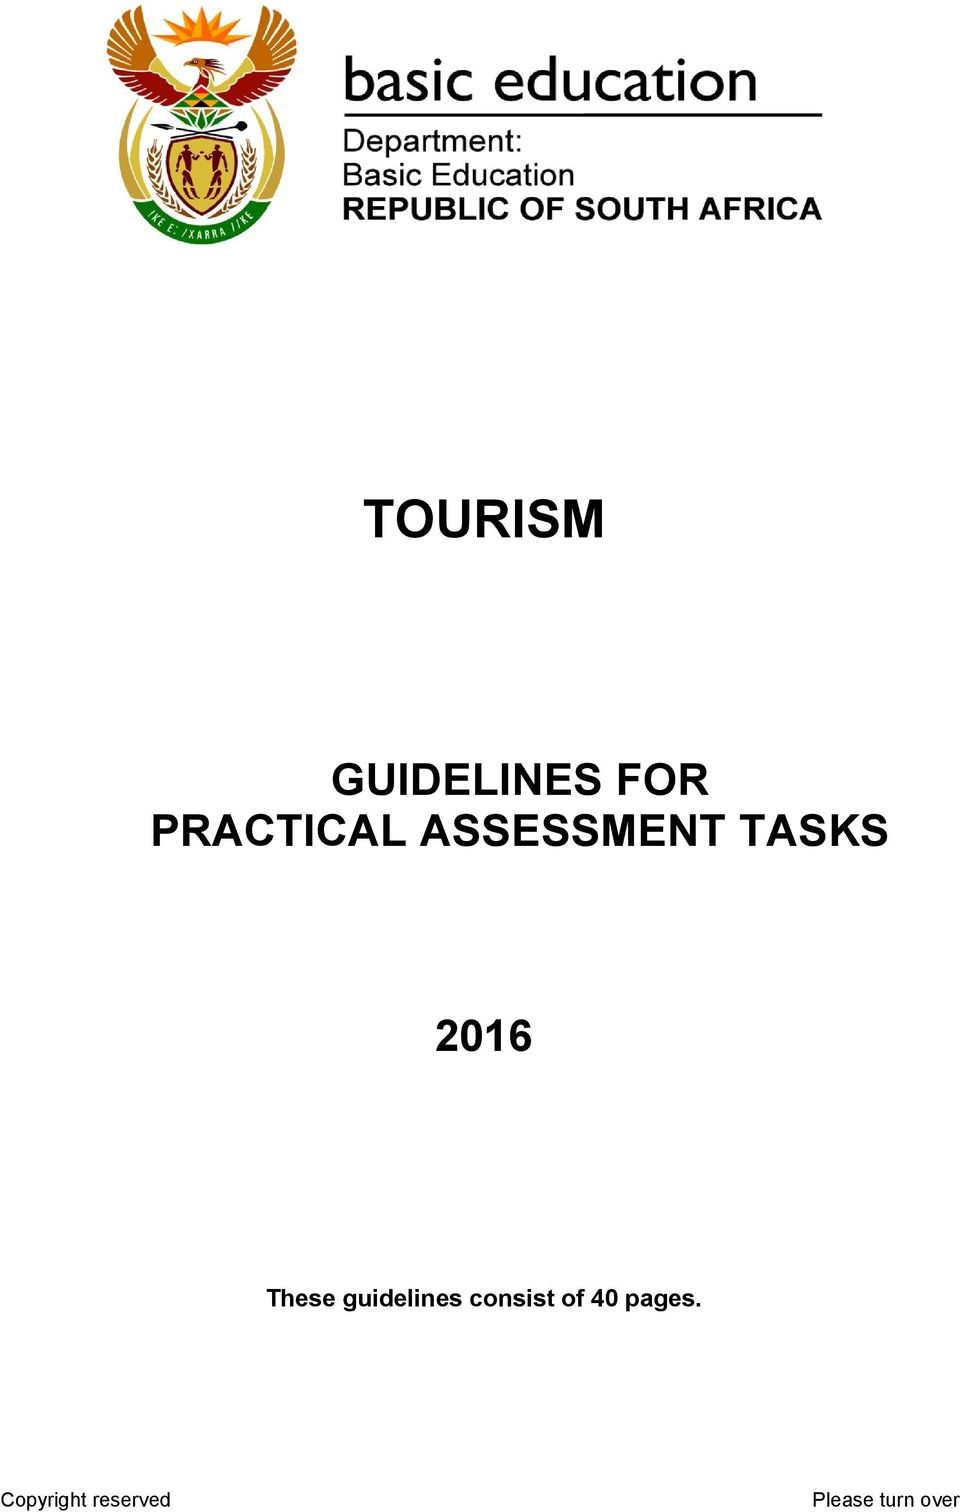 tourism guidelines for practical assessment tasks pdf rh docplayer net Rules Procedures and Middle School Edit Name Tags School